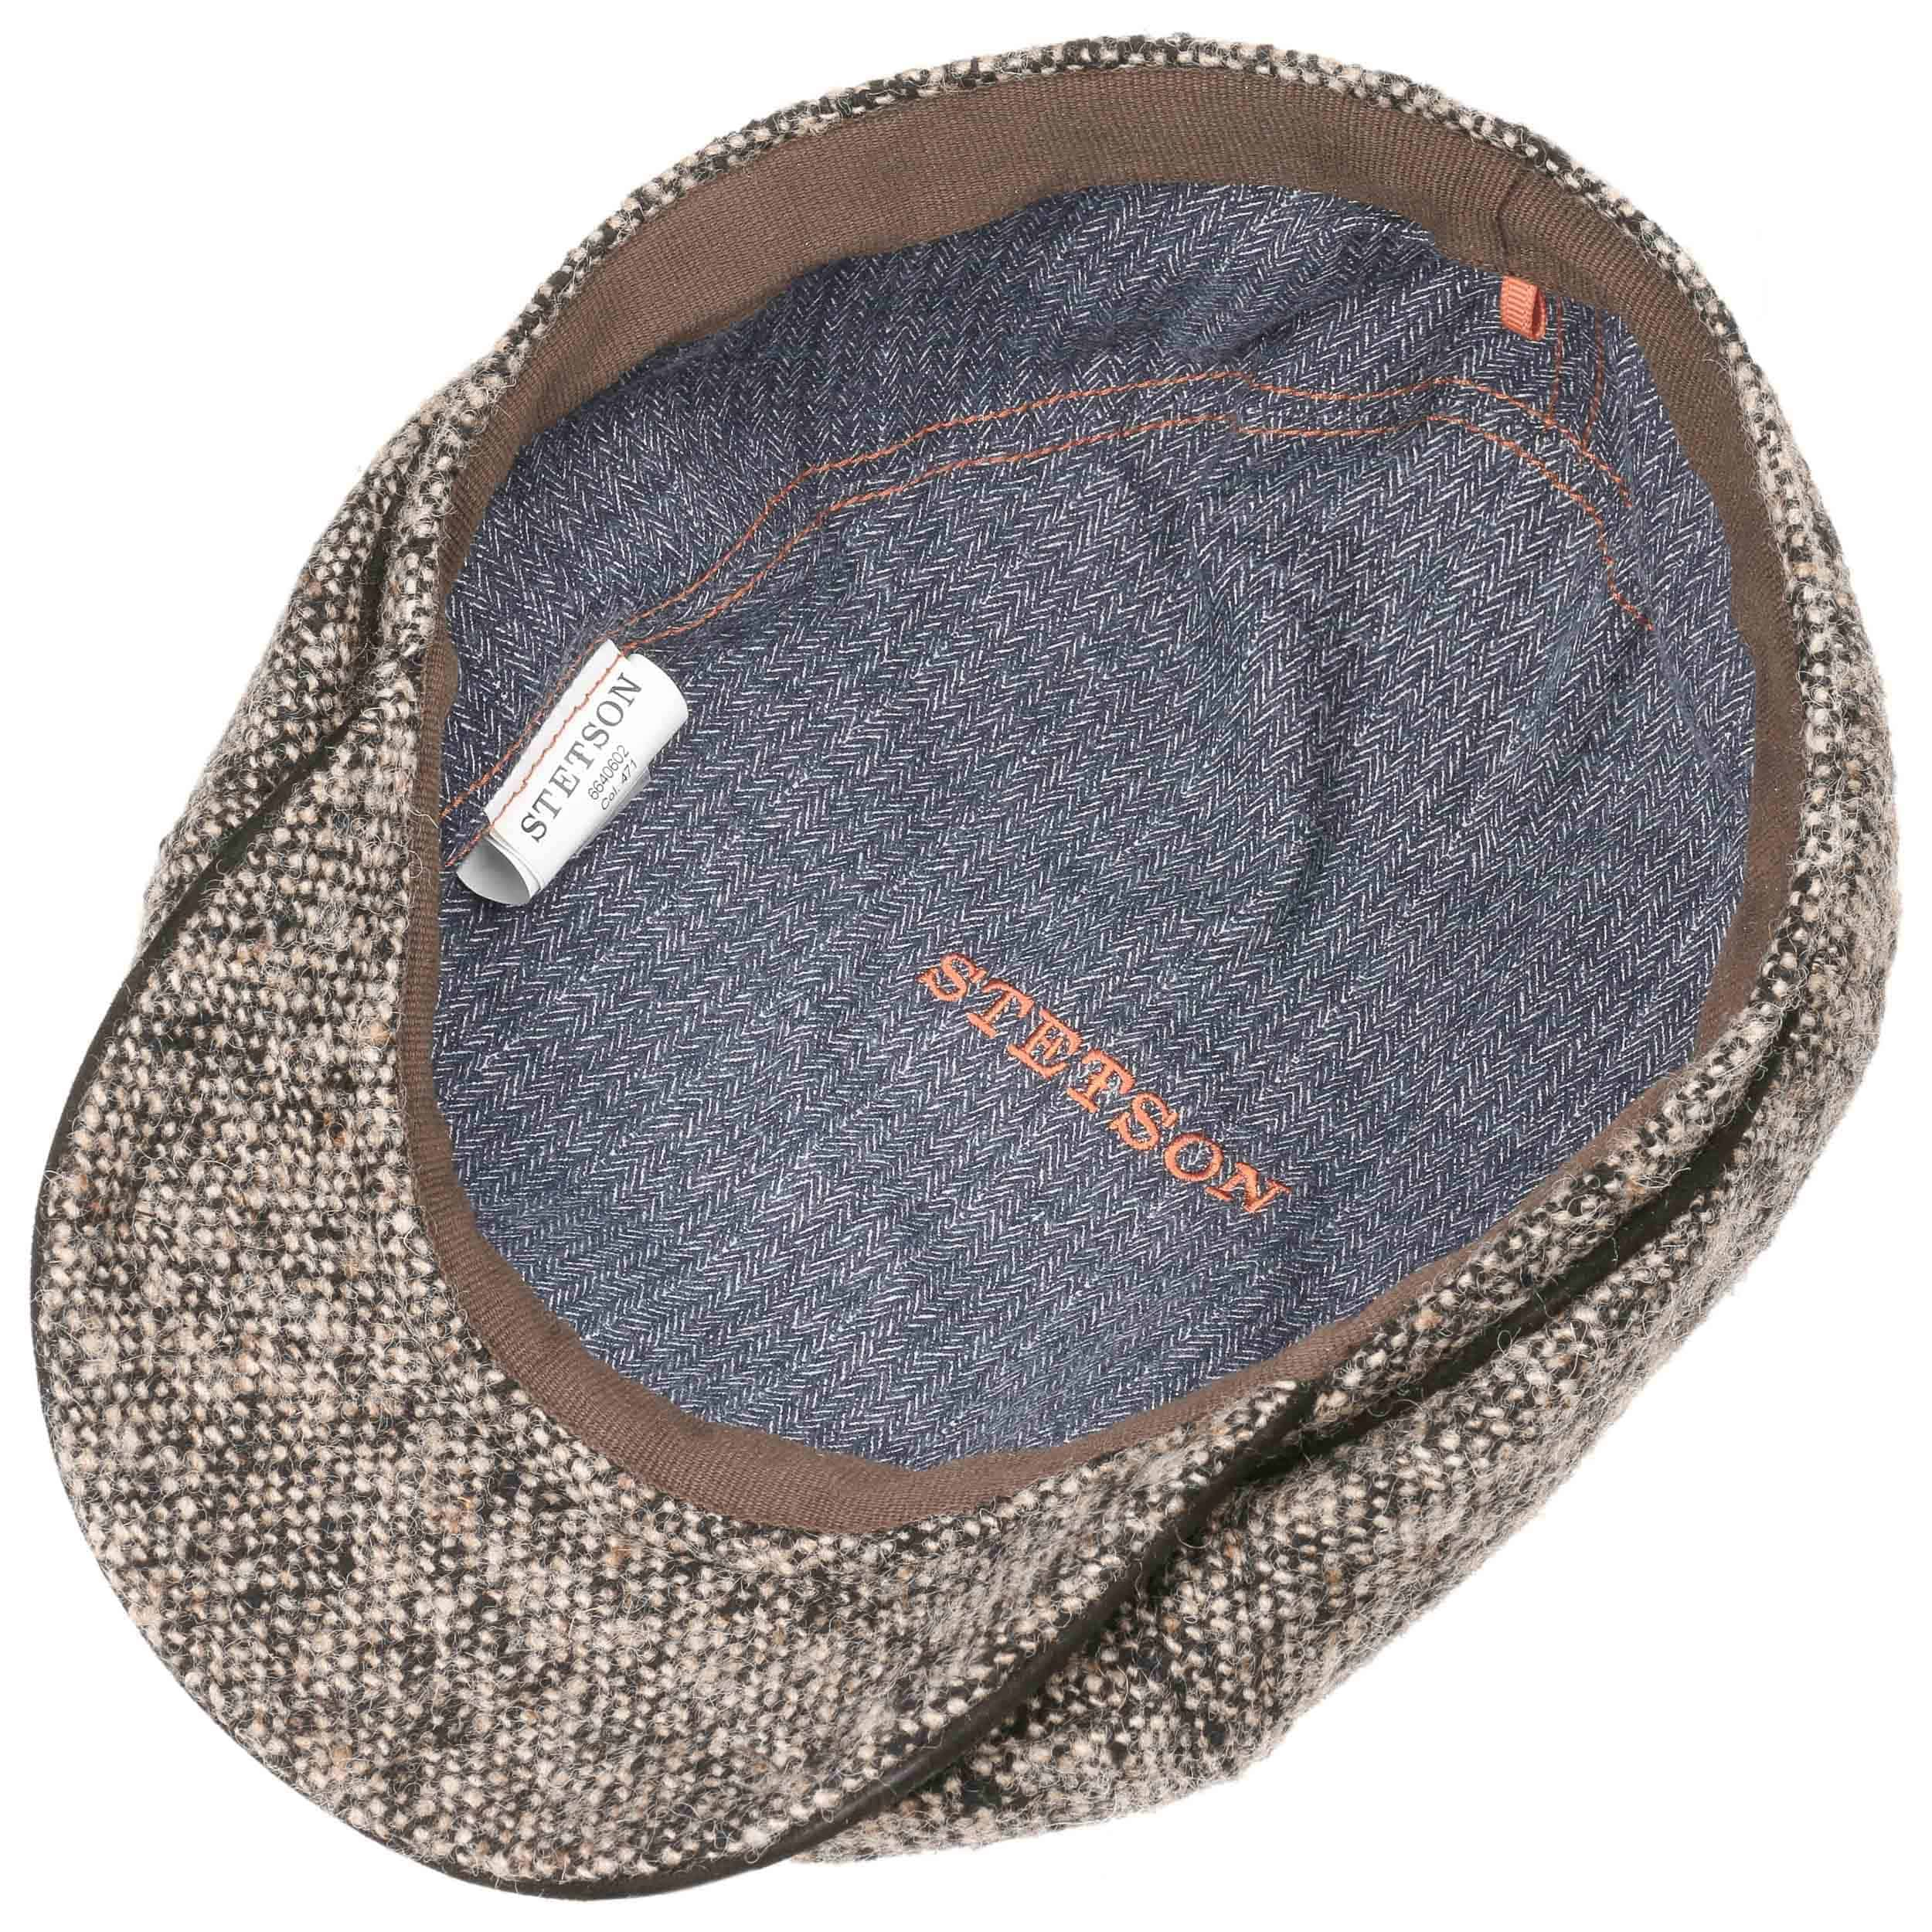 Brooklin Virgin Wool Flat Cap dark beige